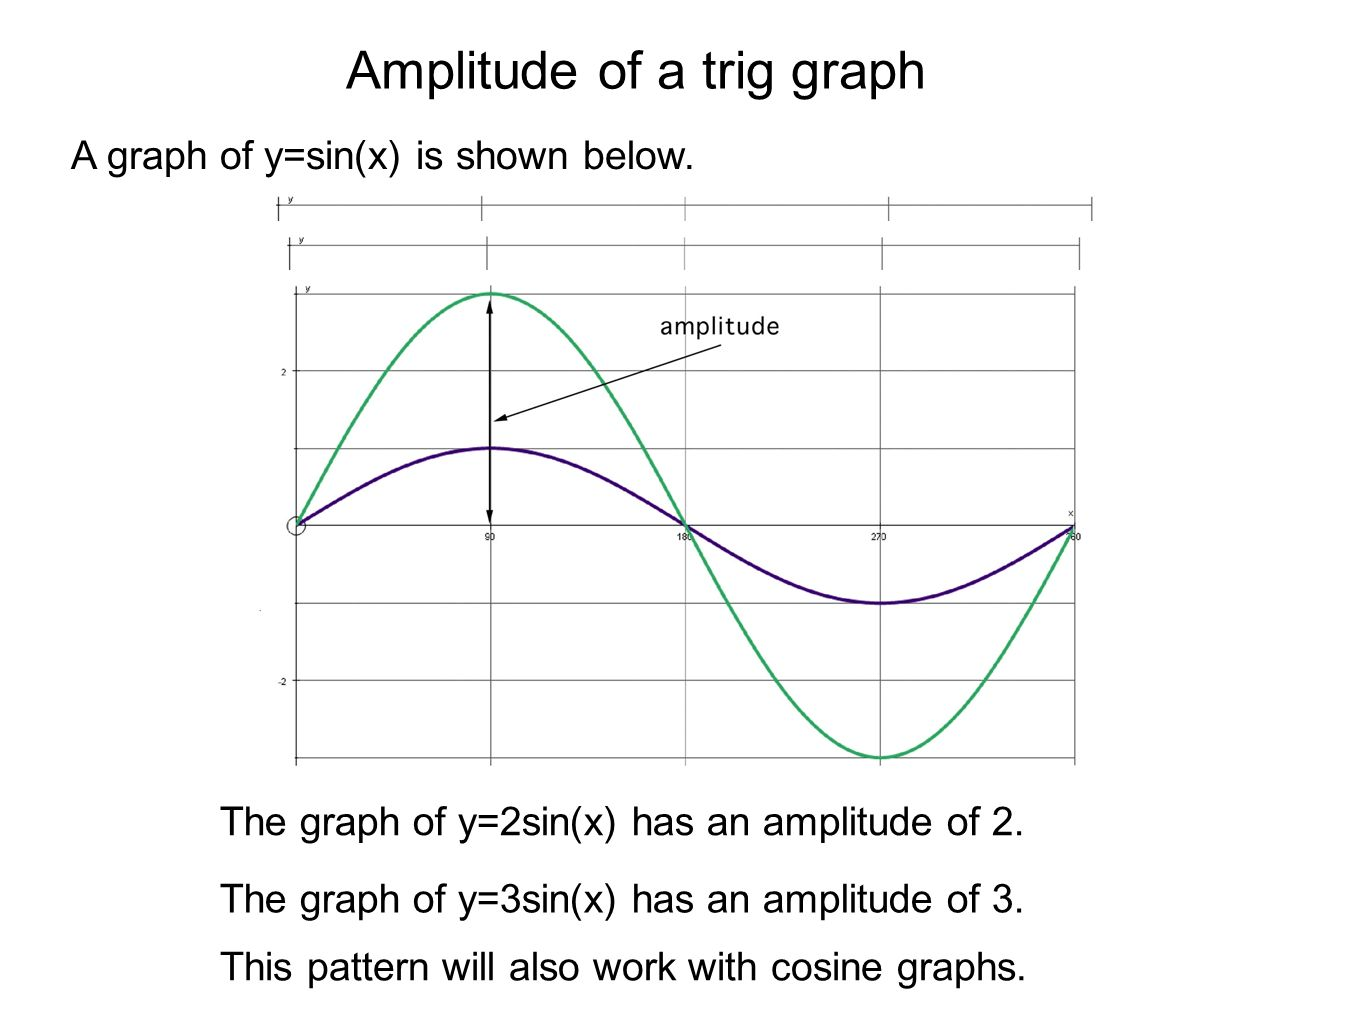 Amplitude of a trig graph A graph of y=sin(x) is shown below. This graph has an amplitude of 1. The graph of y=2sin(x) has an amplitude of 2. The grap